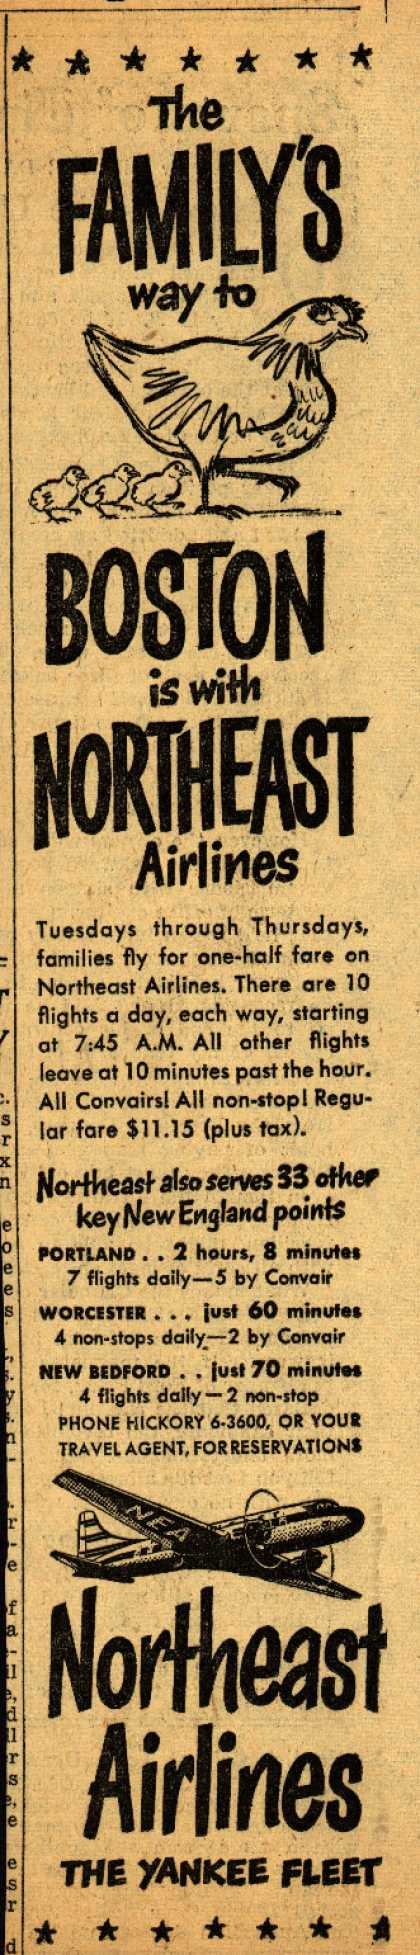 "Northeast Airline's Boston – The FAMILY""S way to BOSTON is with NORTHEAST Airlines (1950)"